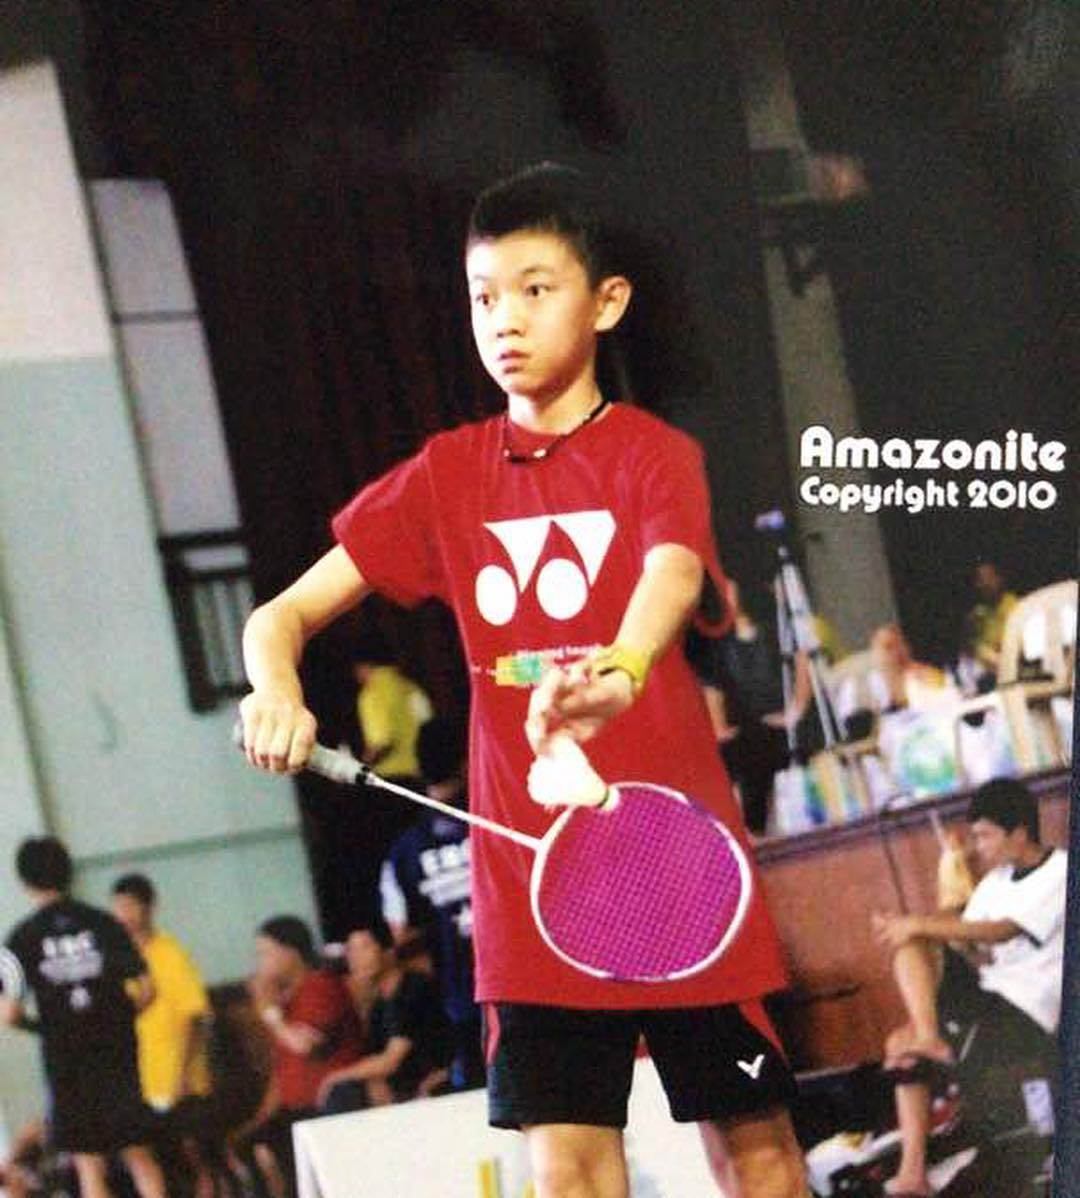 Facts About Lee Zii Jia, Malaysian badminton player - young